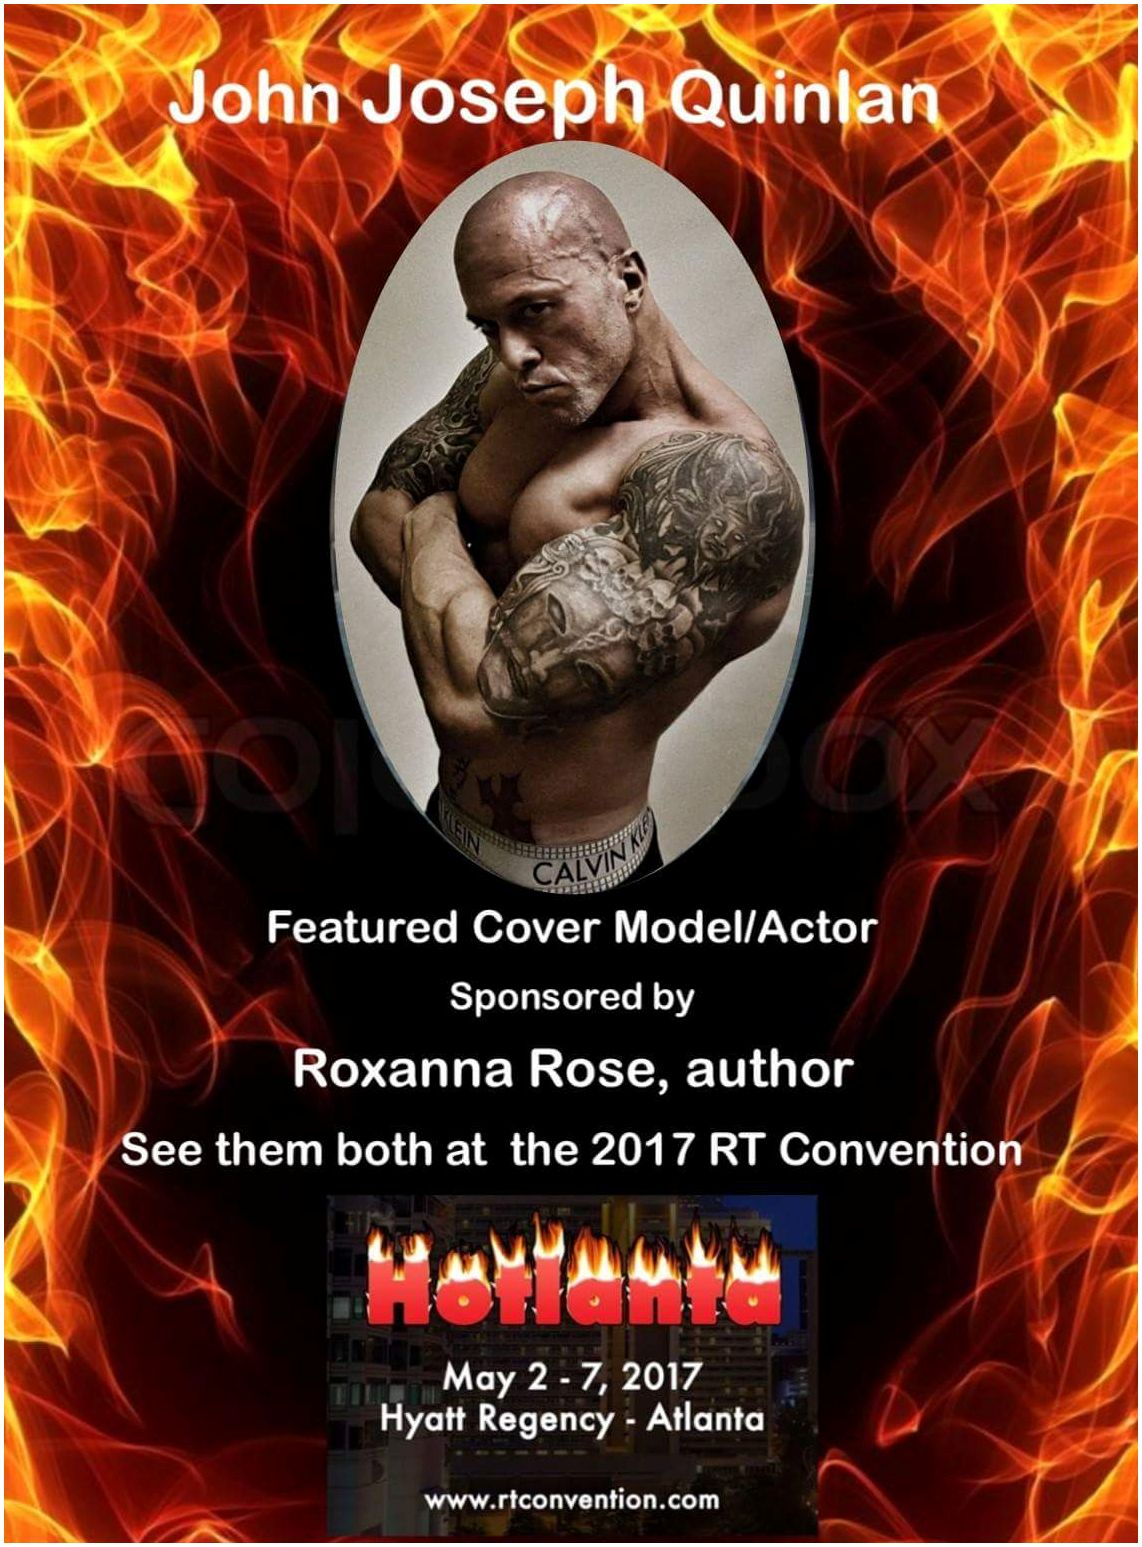 2017 RT Convention Atlanta Featured Cover Model John Joseph Quinlan by Roxanna Rose #JohnQuinlan #RT17